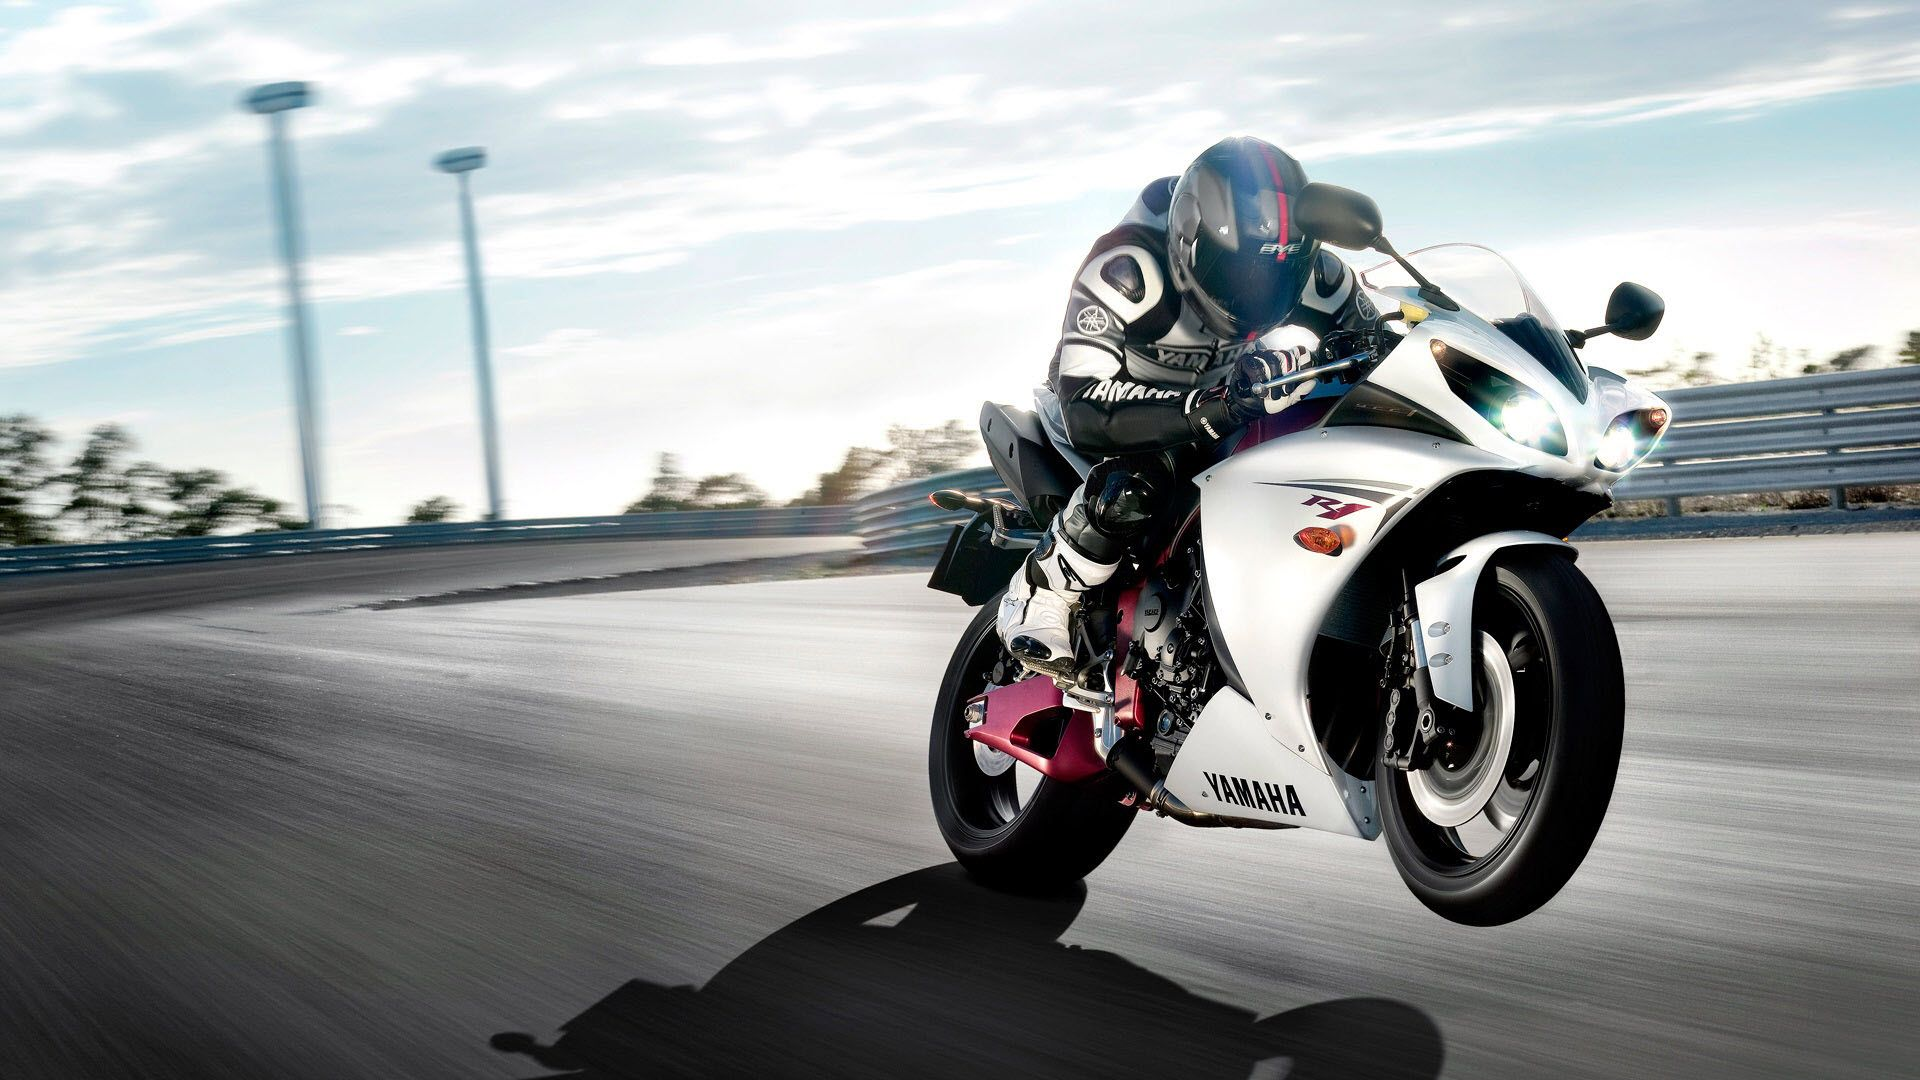 Download Free Bikes And Cars Desktop Wallpapers Screen Savers